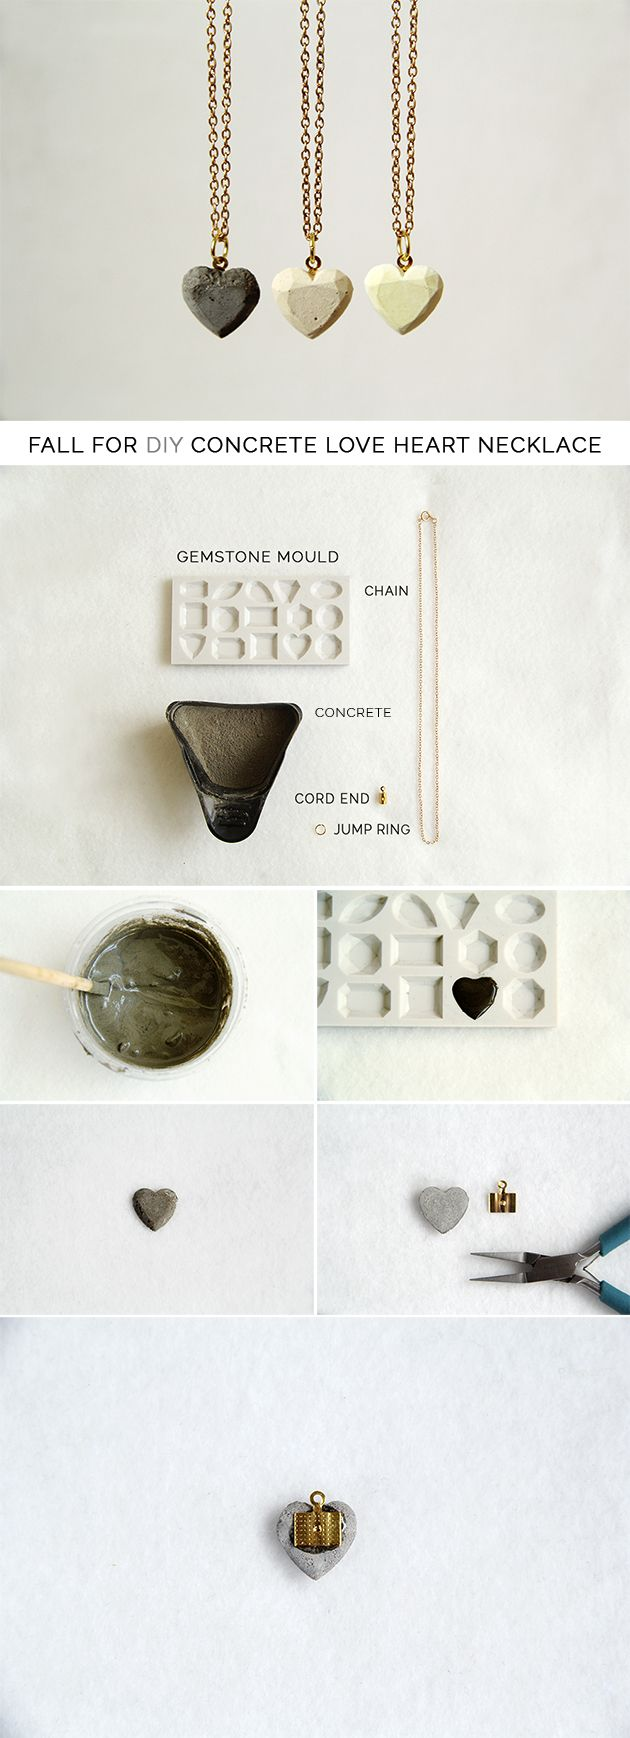 Concrete heart necklace DIY//